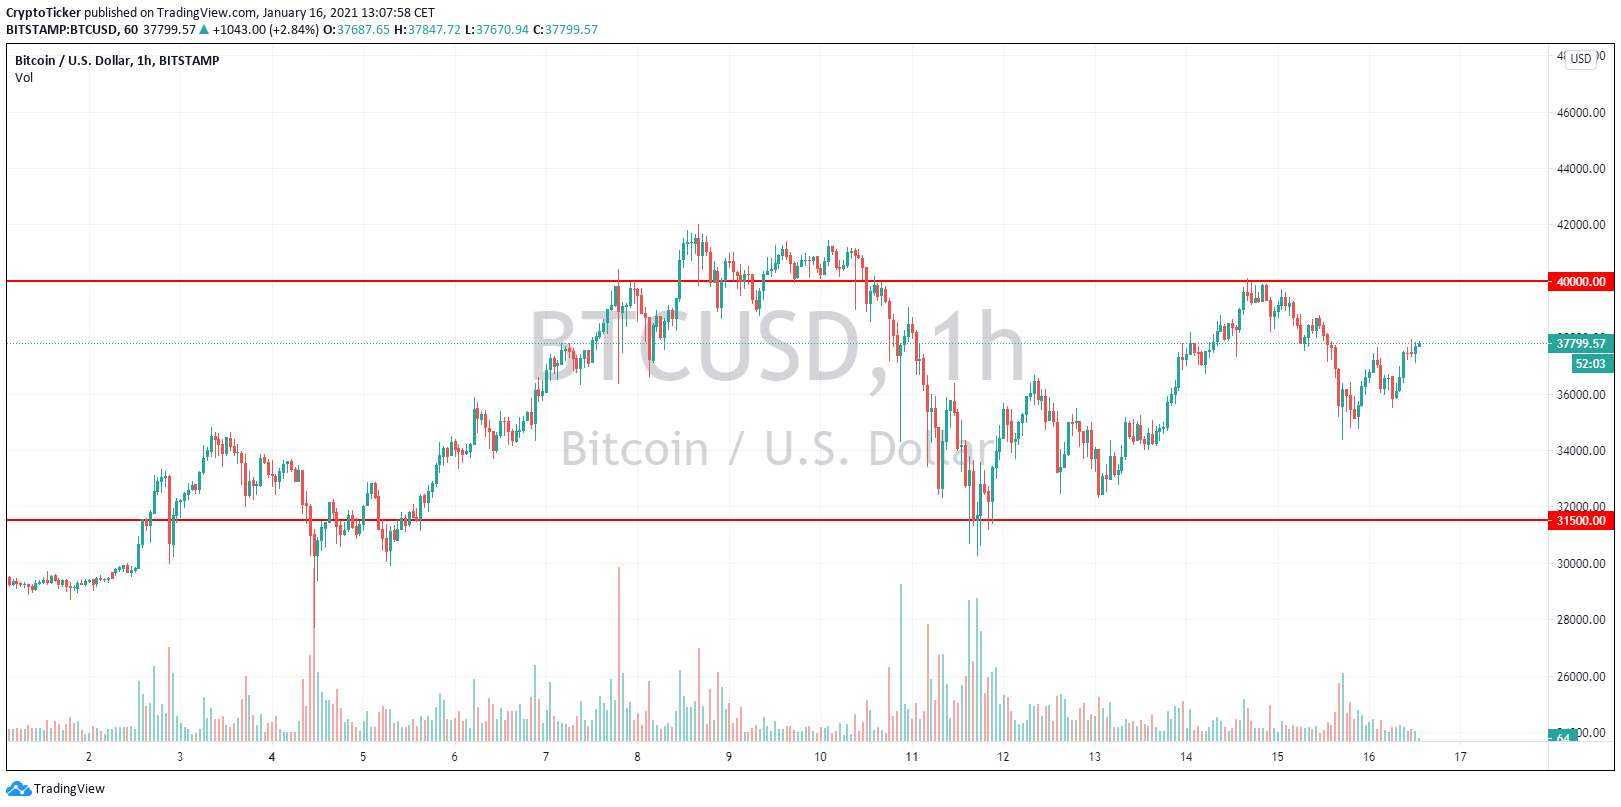 TA that predicted Bitcoin Price to consolidate is showing signs of STRENGTH ahead